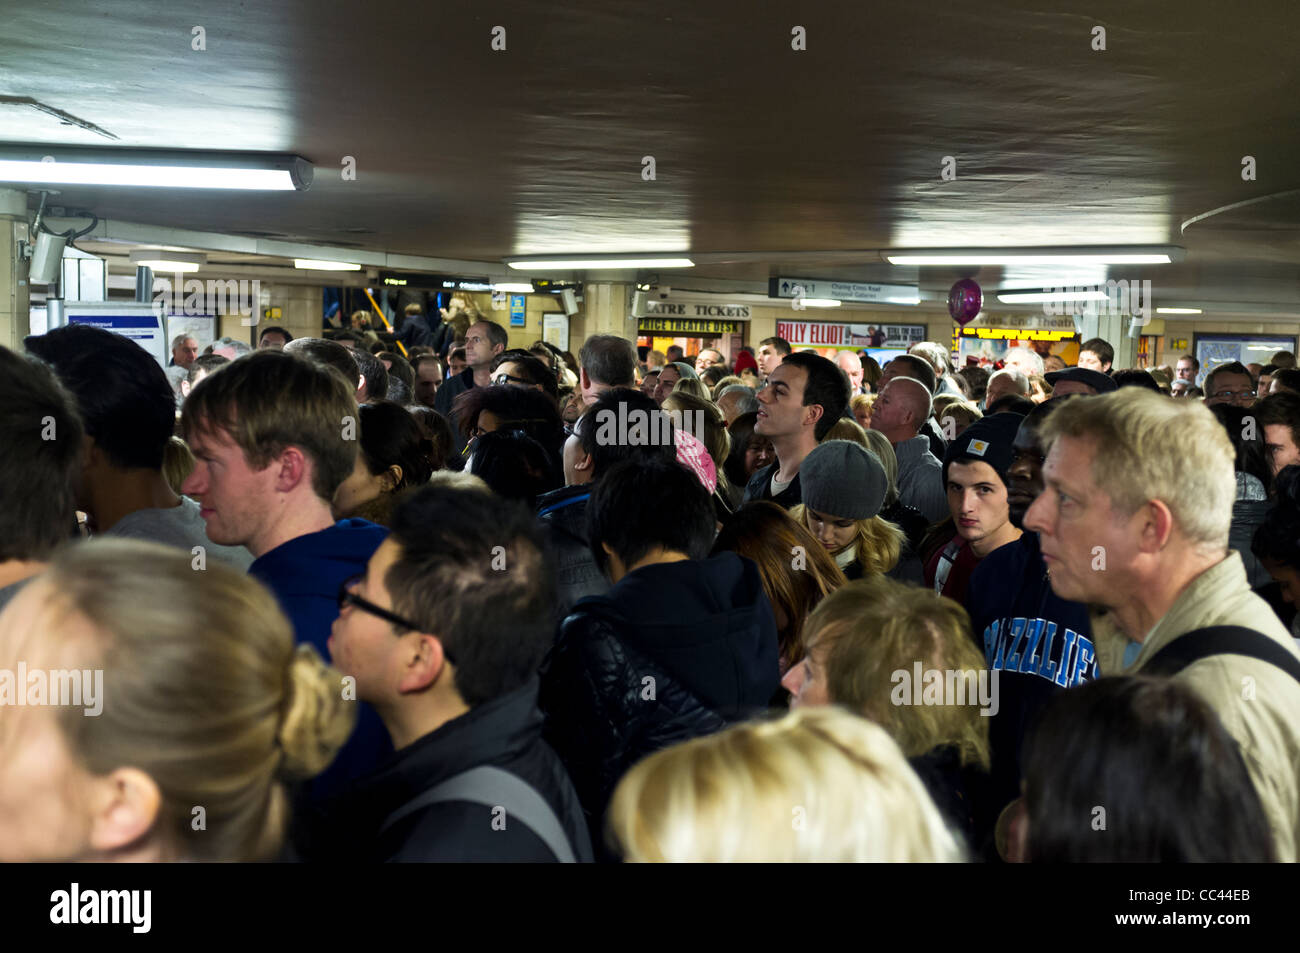 An overcrowded Leicester Square tube station. - Stock Image